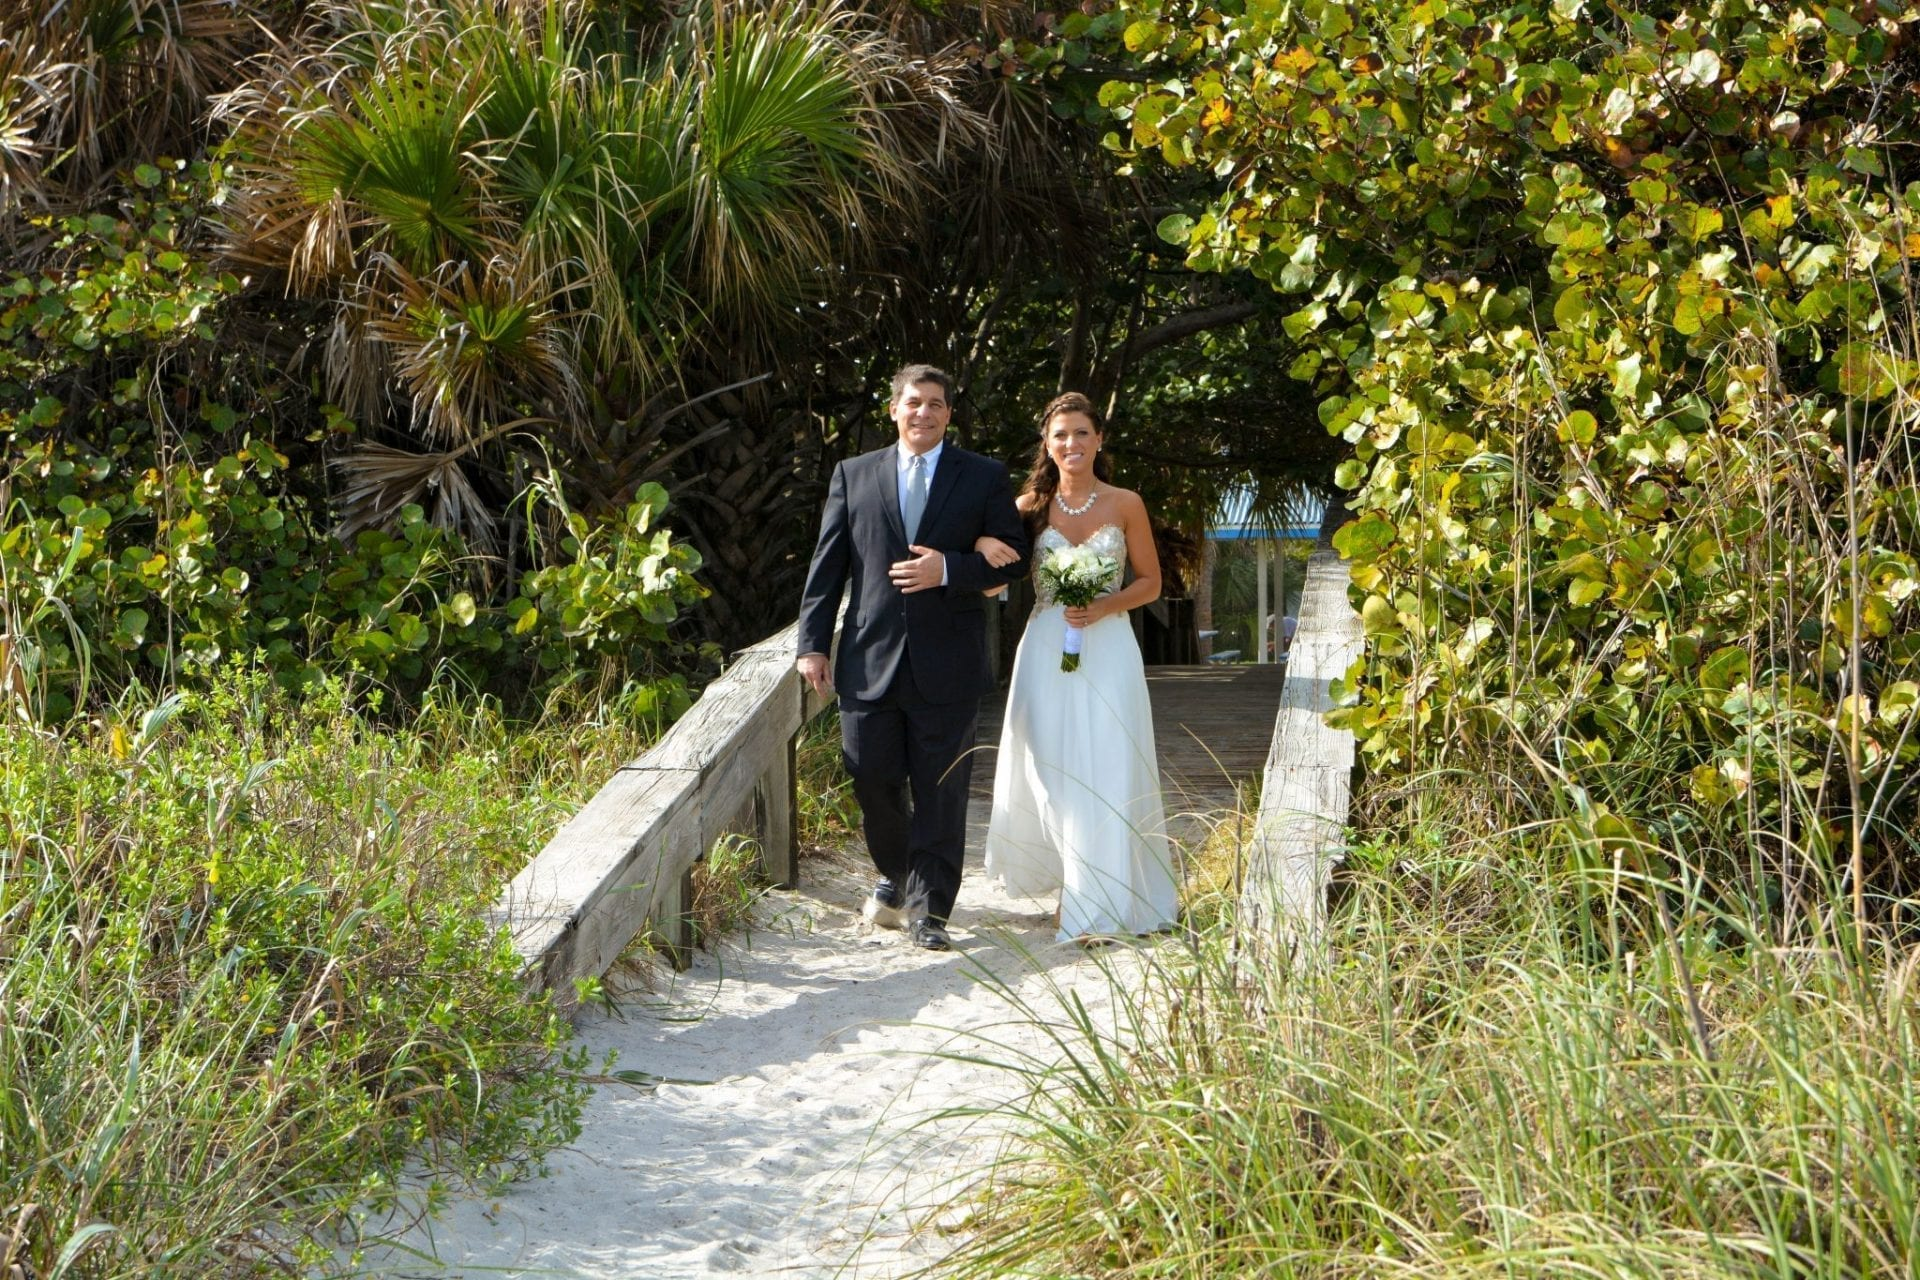 Couple on beach walkway after wedding ceremony in Cherie Down Park, FL